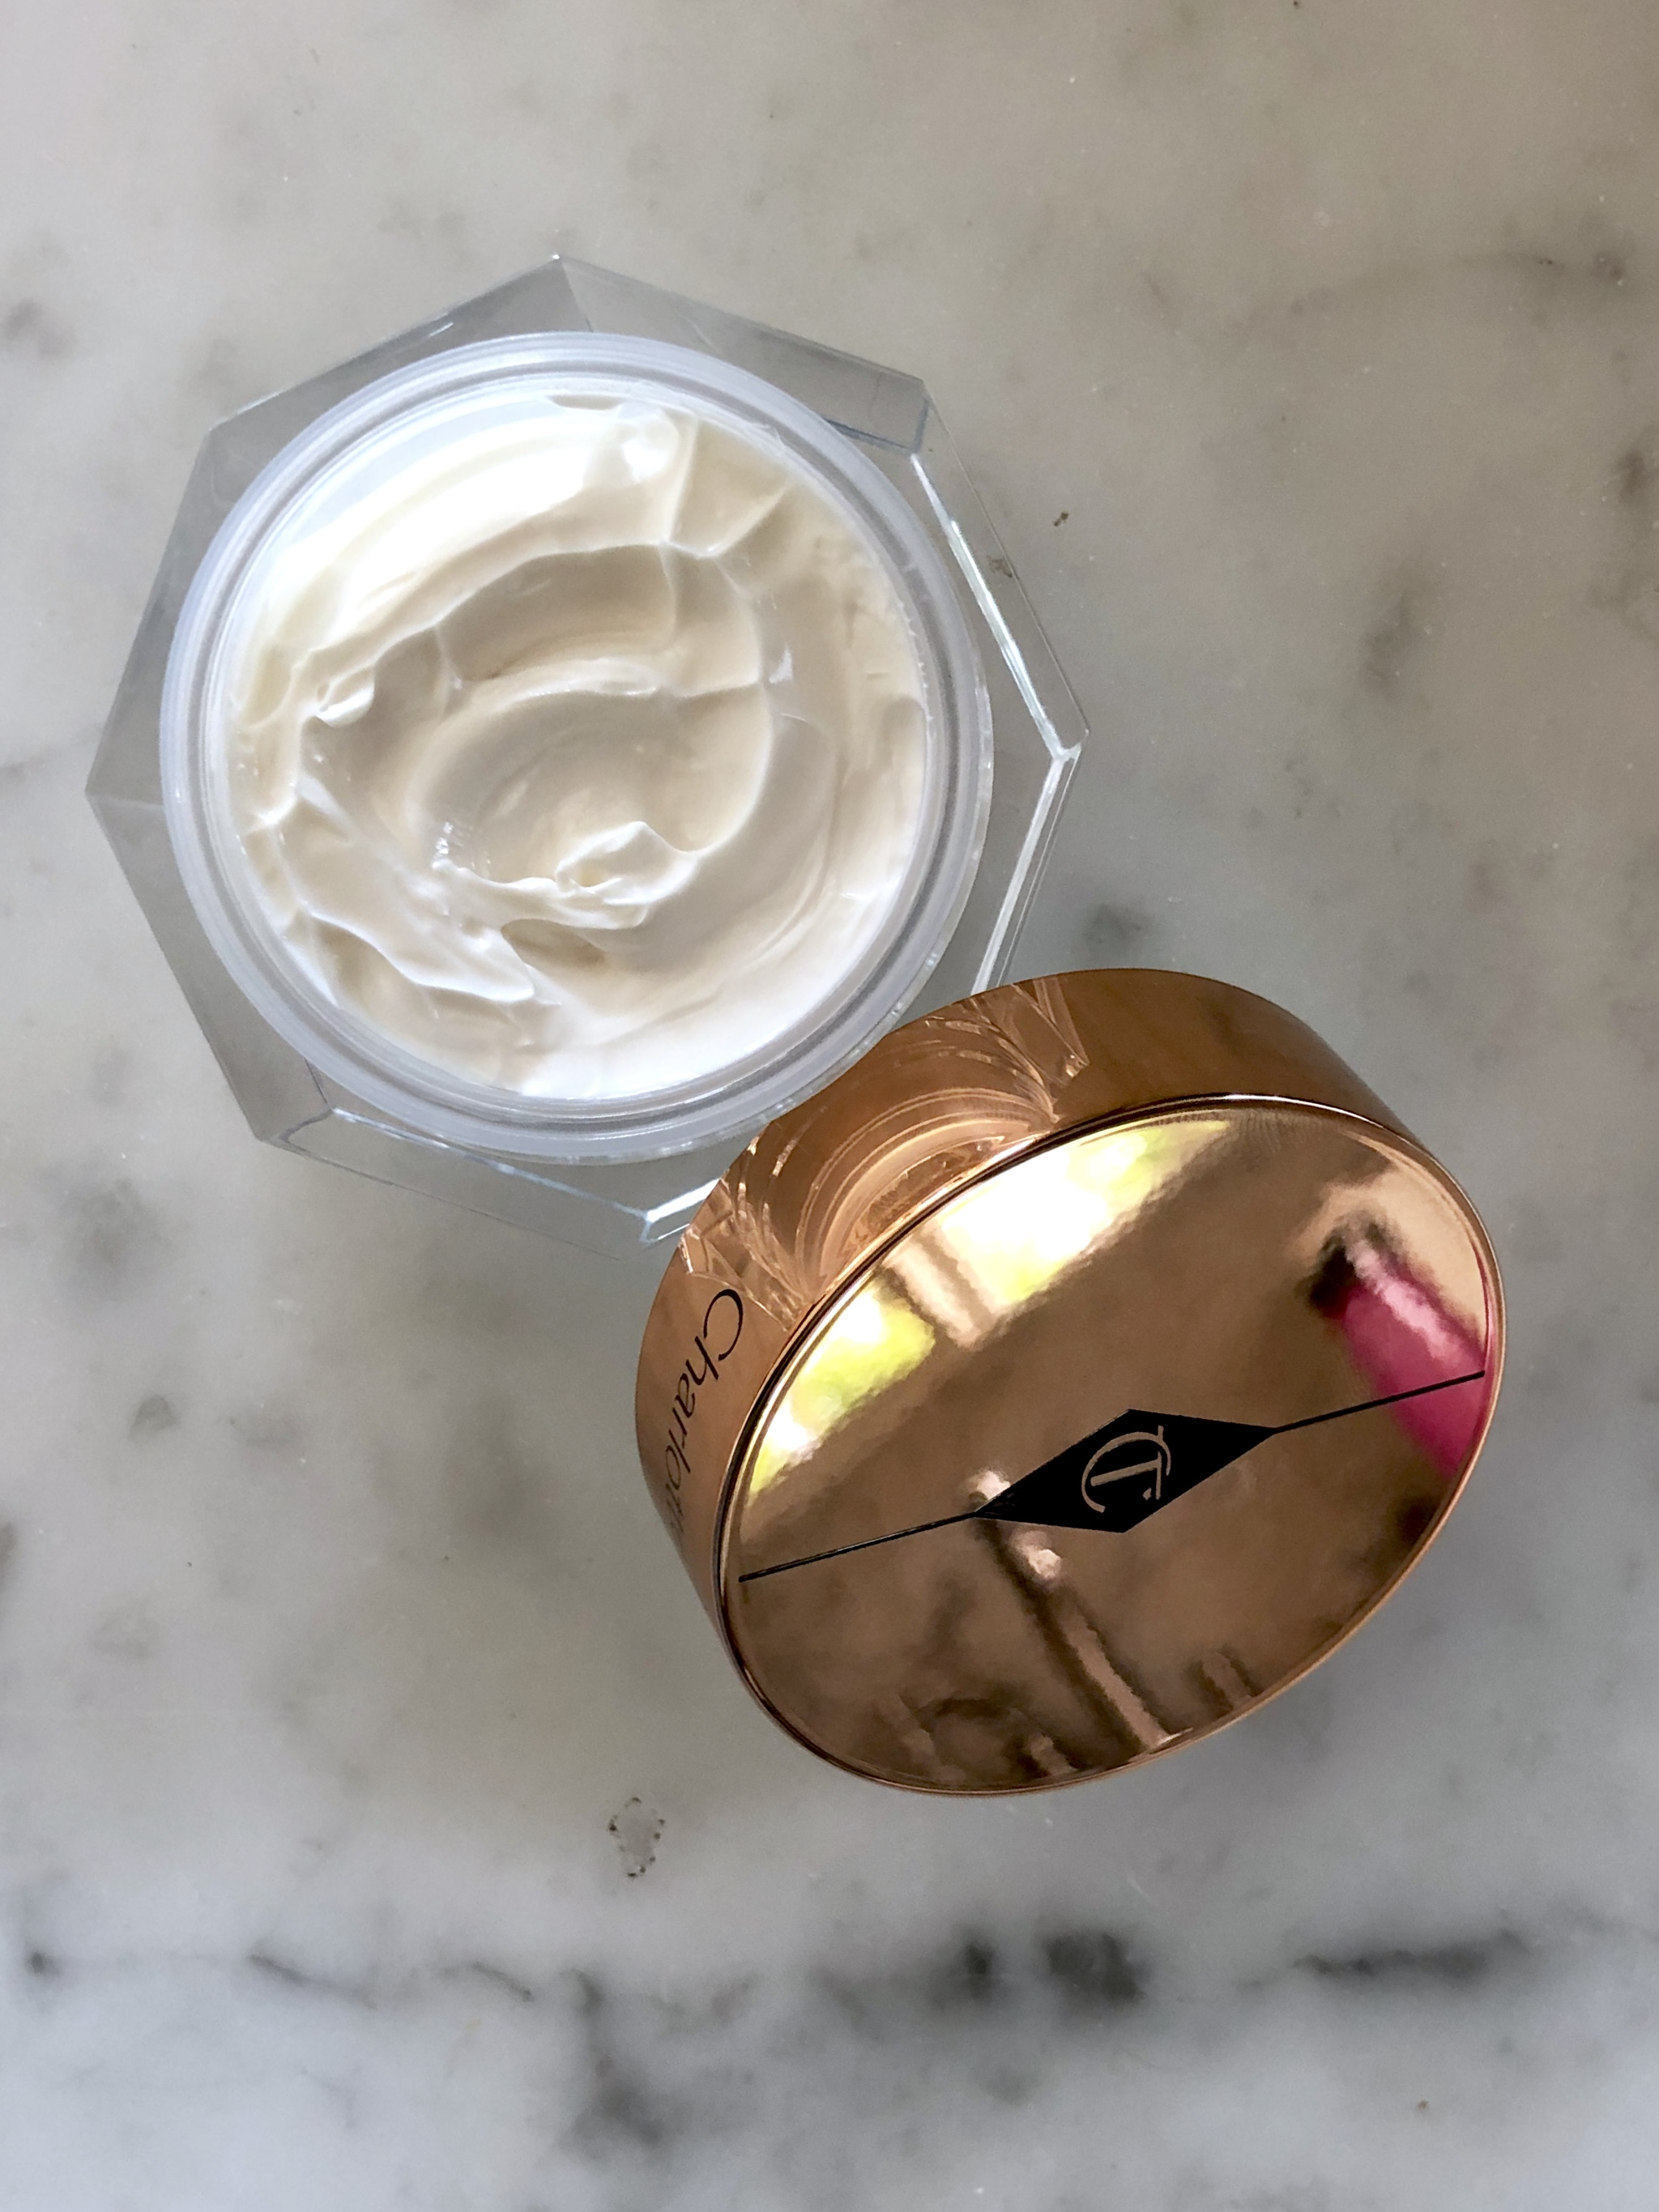 charlotte tilbury magic cream6.jpg